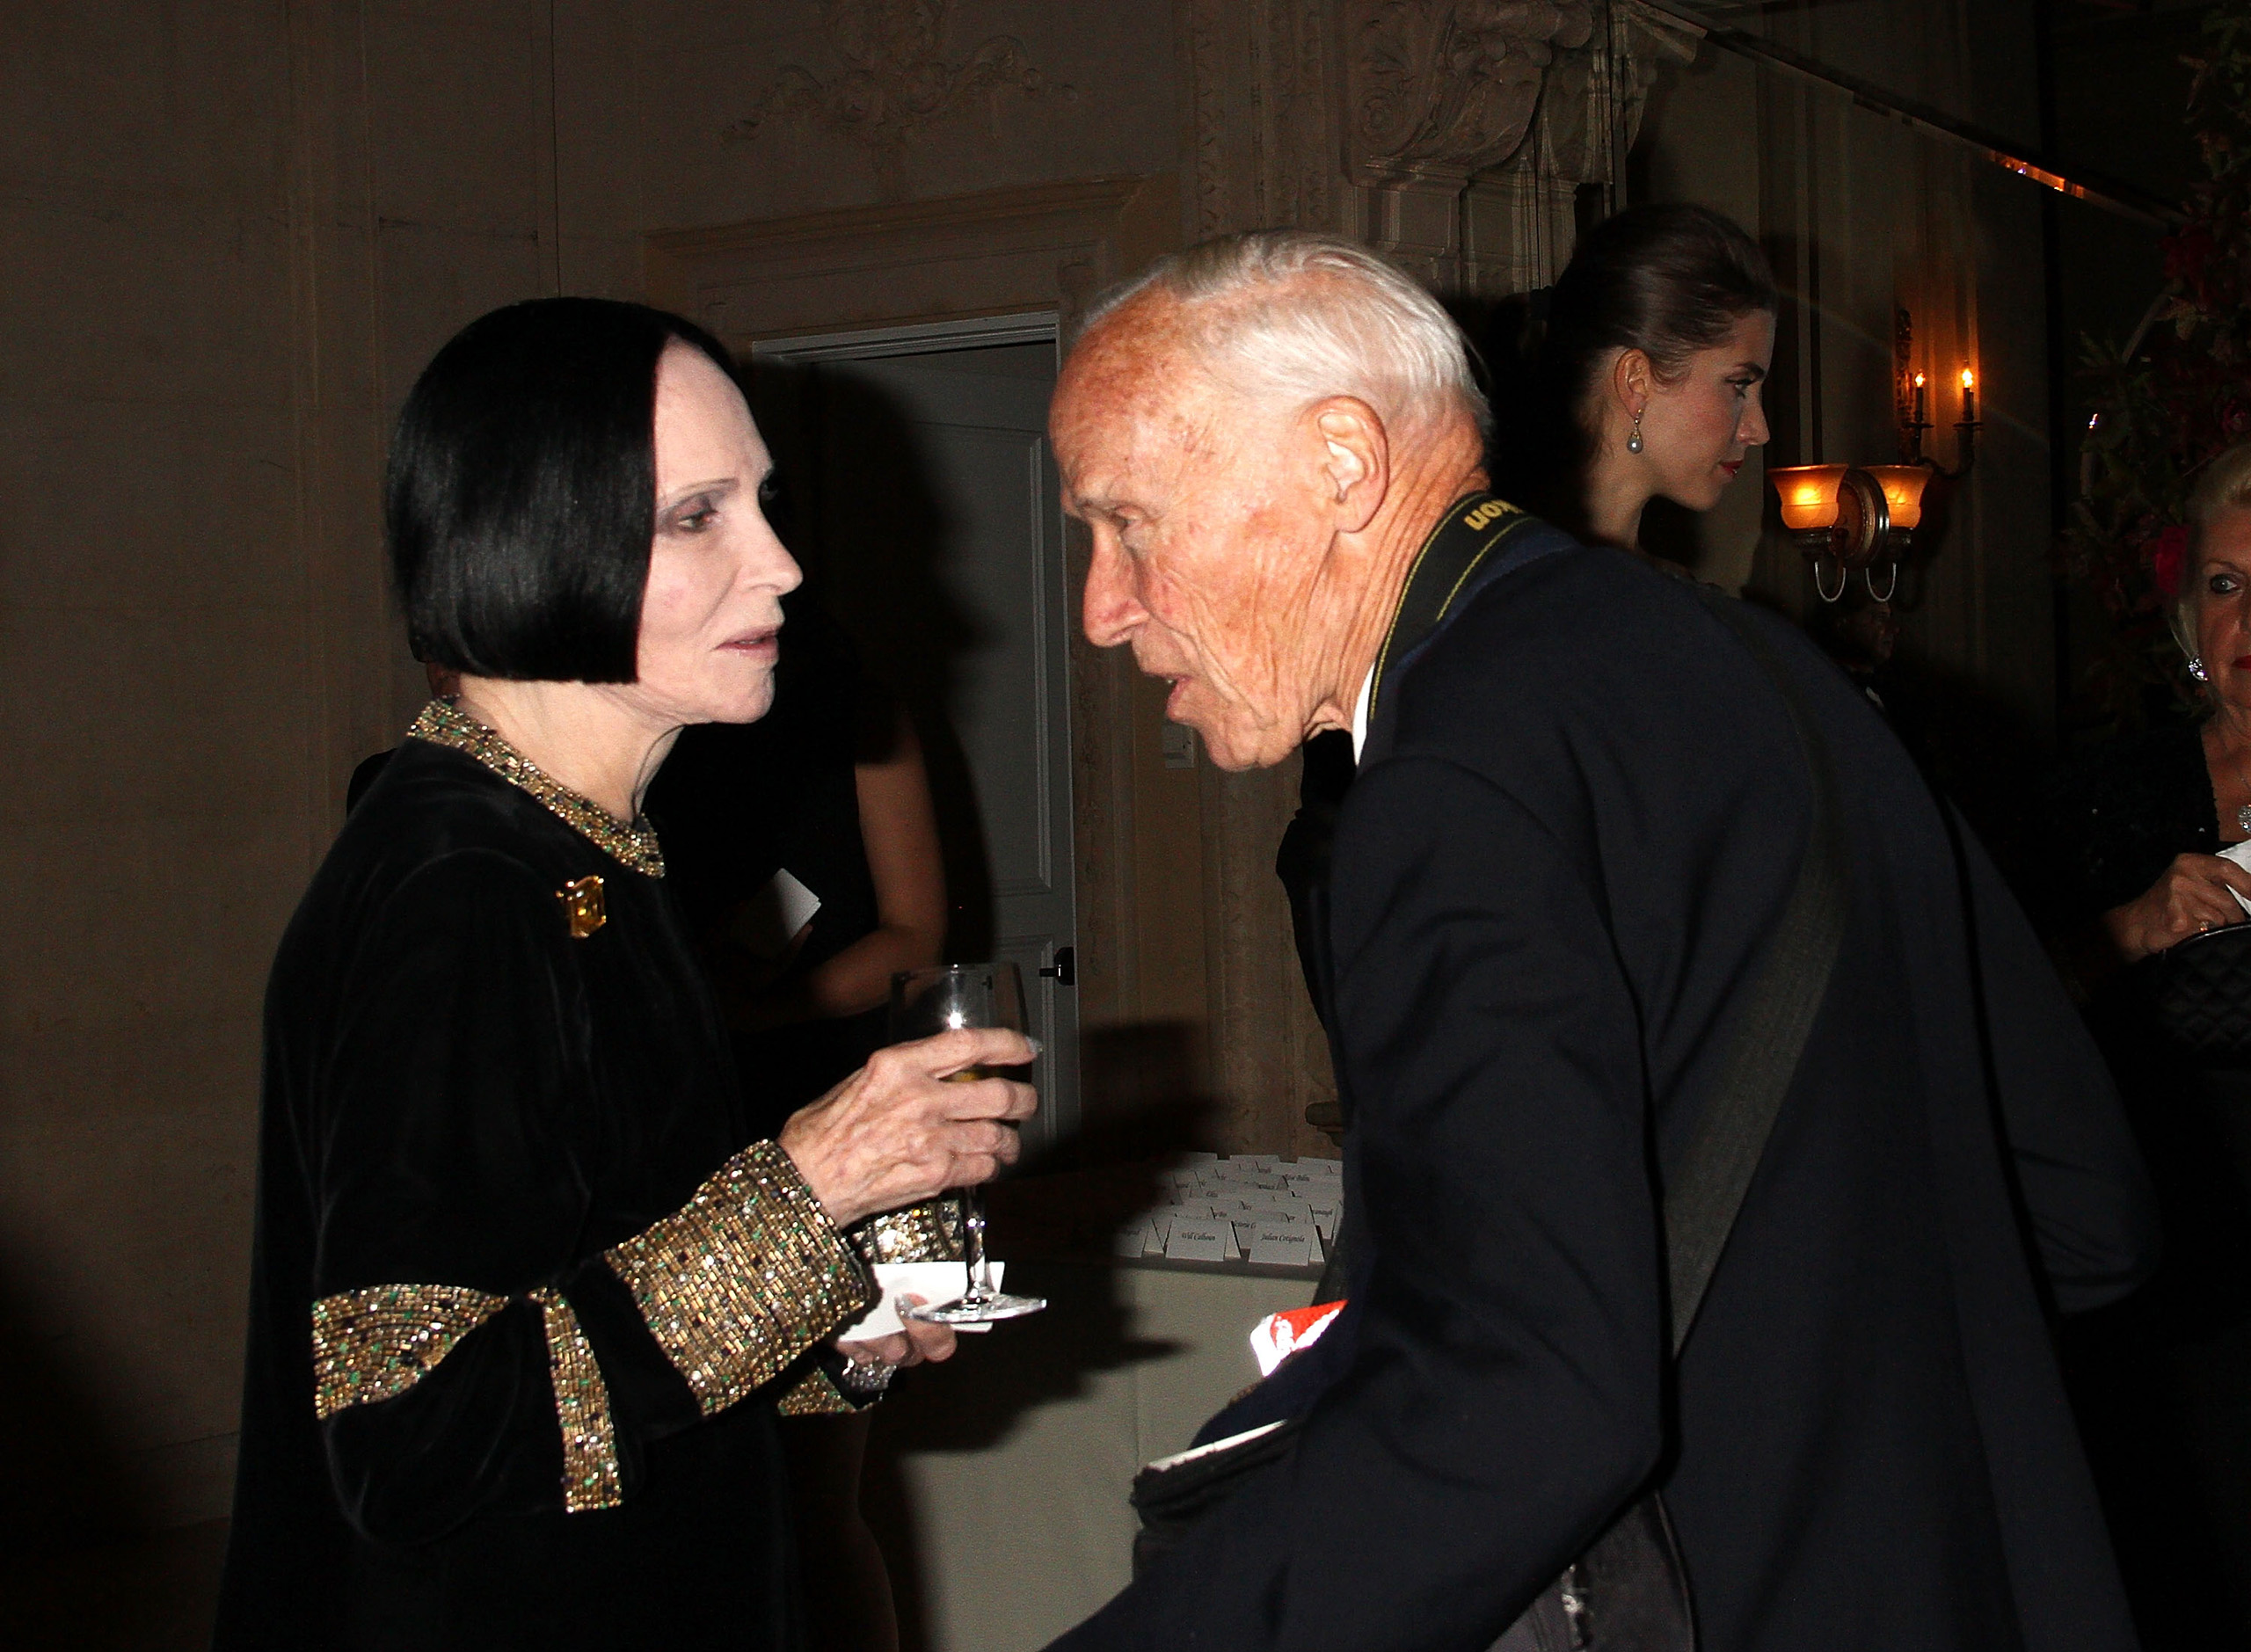 Designer Mary McFadden and New York Times photographer Bill Cunningham attend the Casita Maria Fiesta 2015 at The Plaza Hotel in New York City on Oct. 13, 2015.